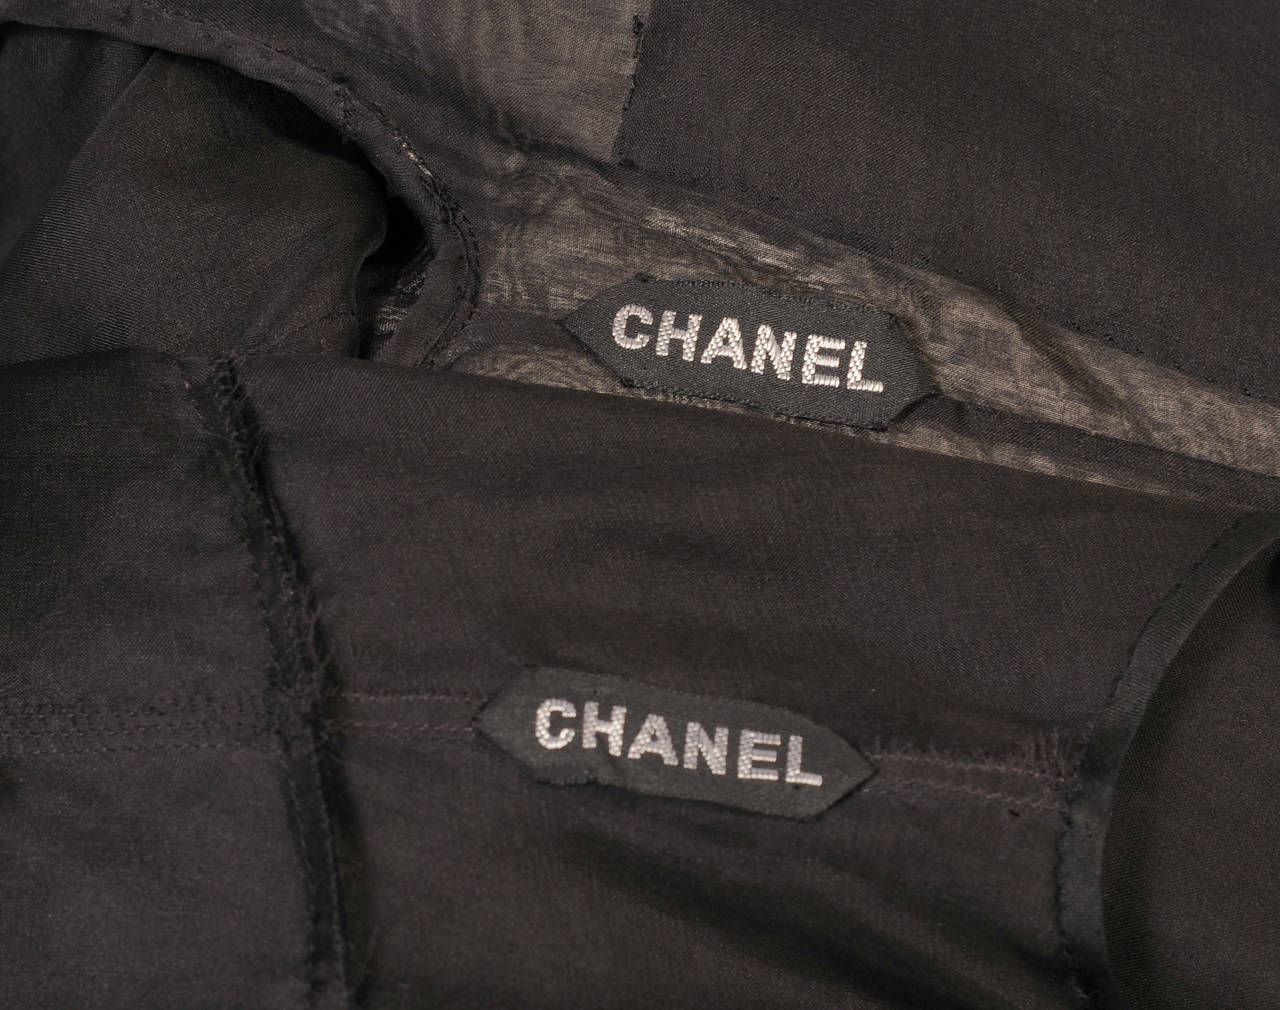 Chanel Haute Couture Sheer Black Silk Dress and Jacket For Sale 5